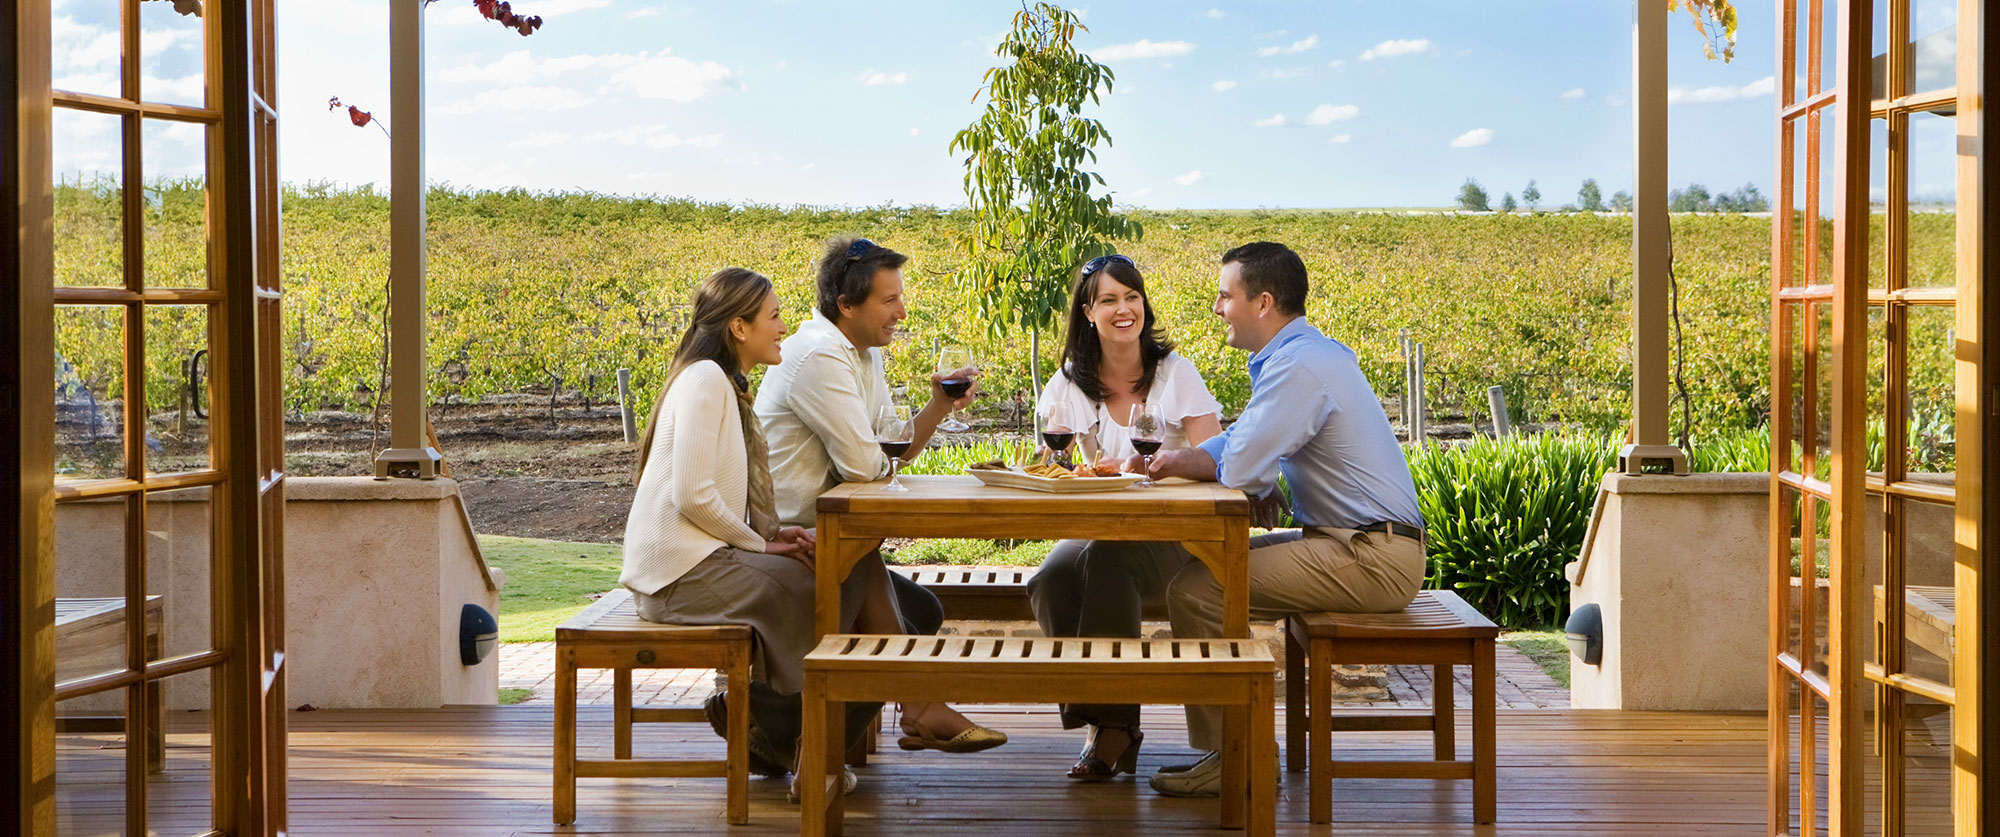 Outback and South Australia Travel Package: Cruise and Wine Country Vacation